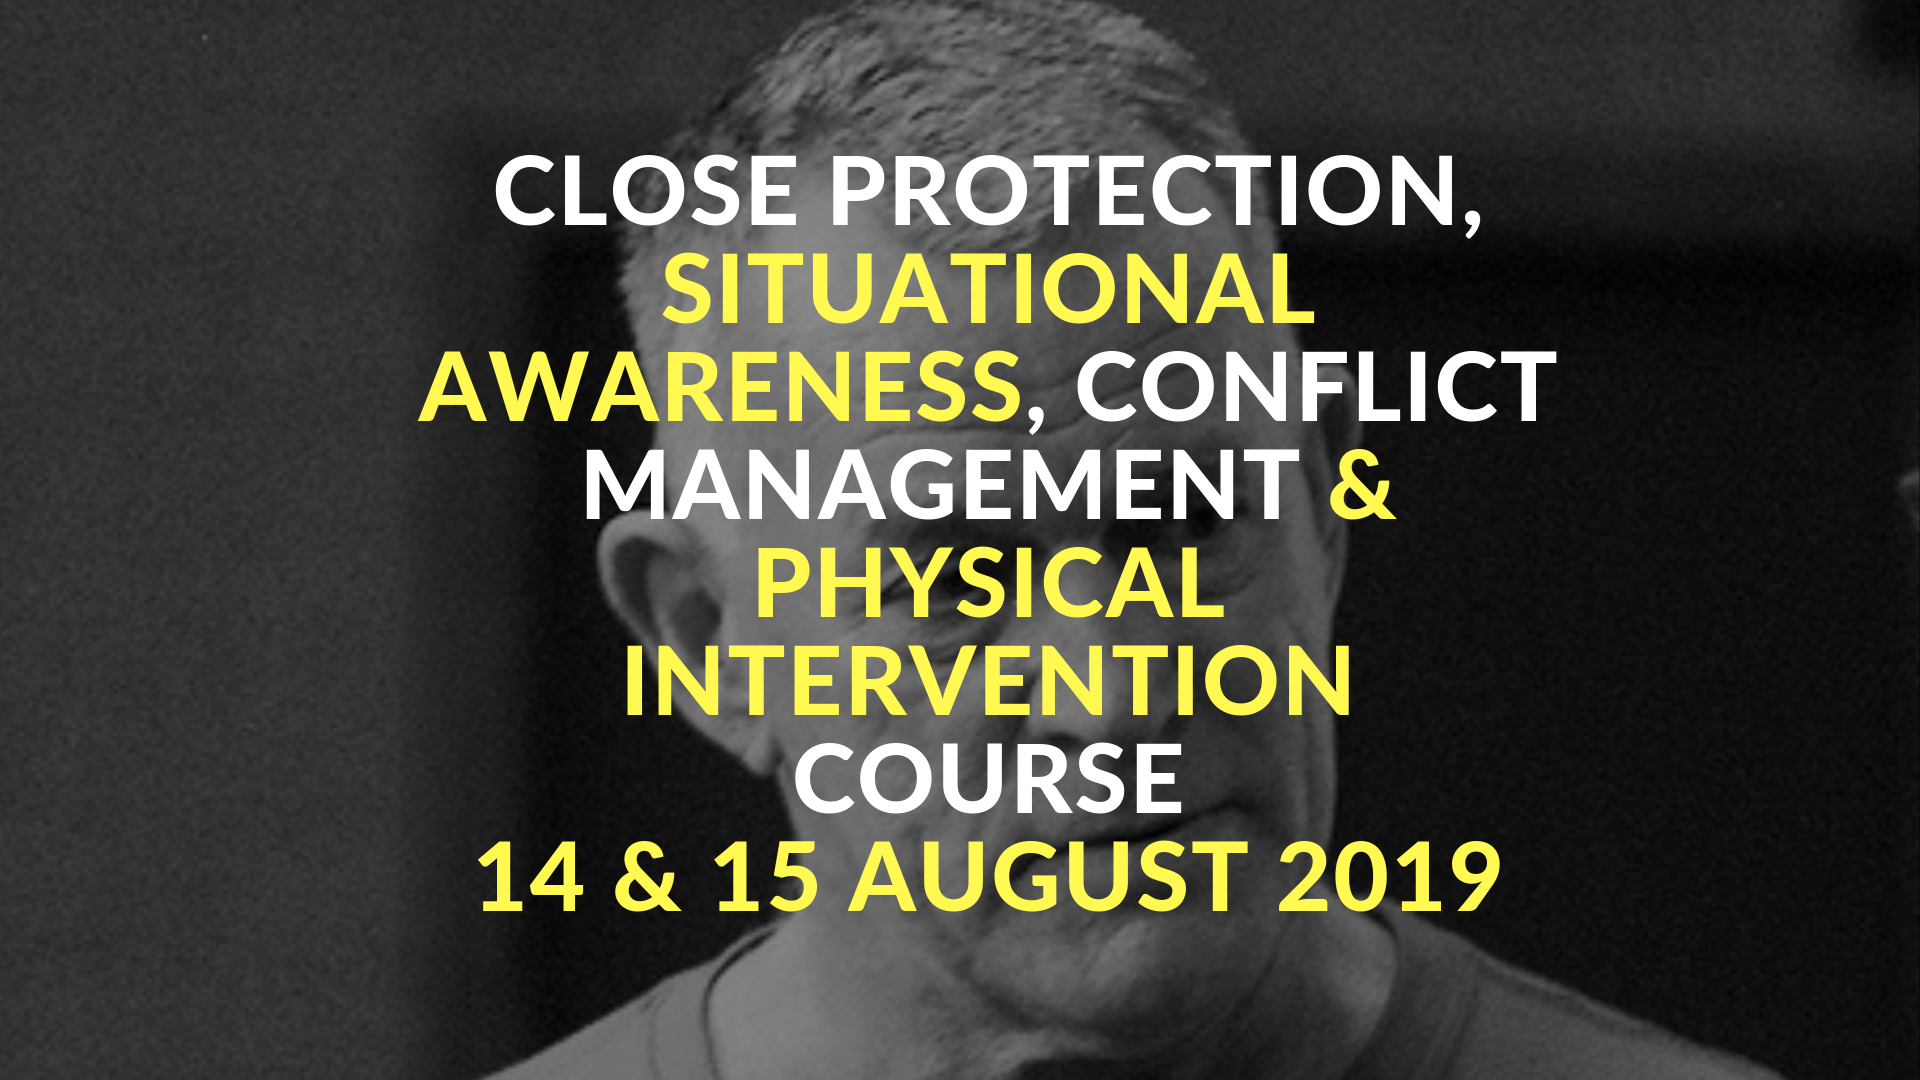 Close Protection Situational Awareness and Conflict Management and Physical Intervention Course